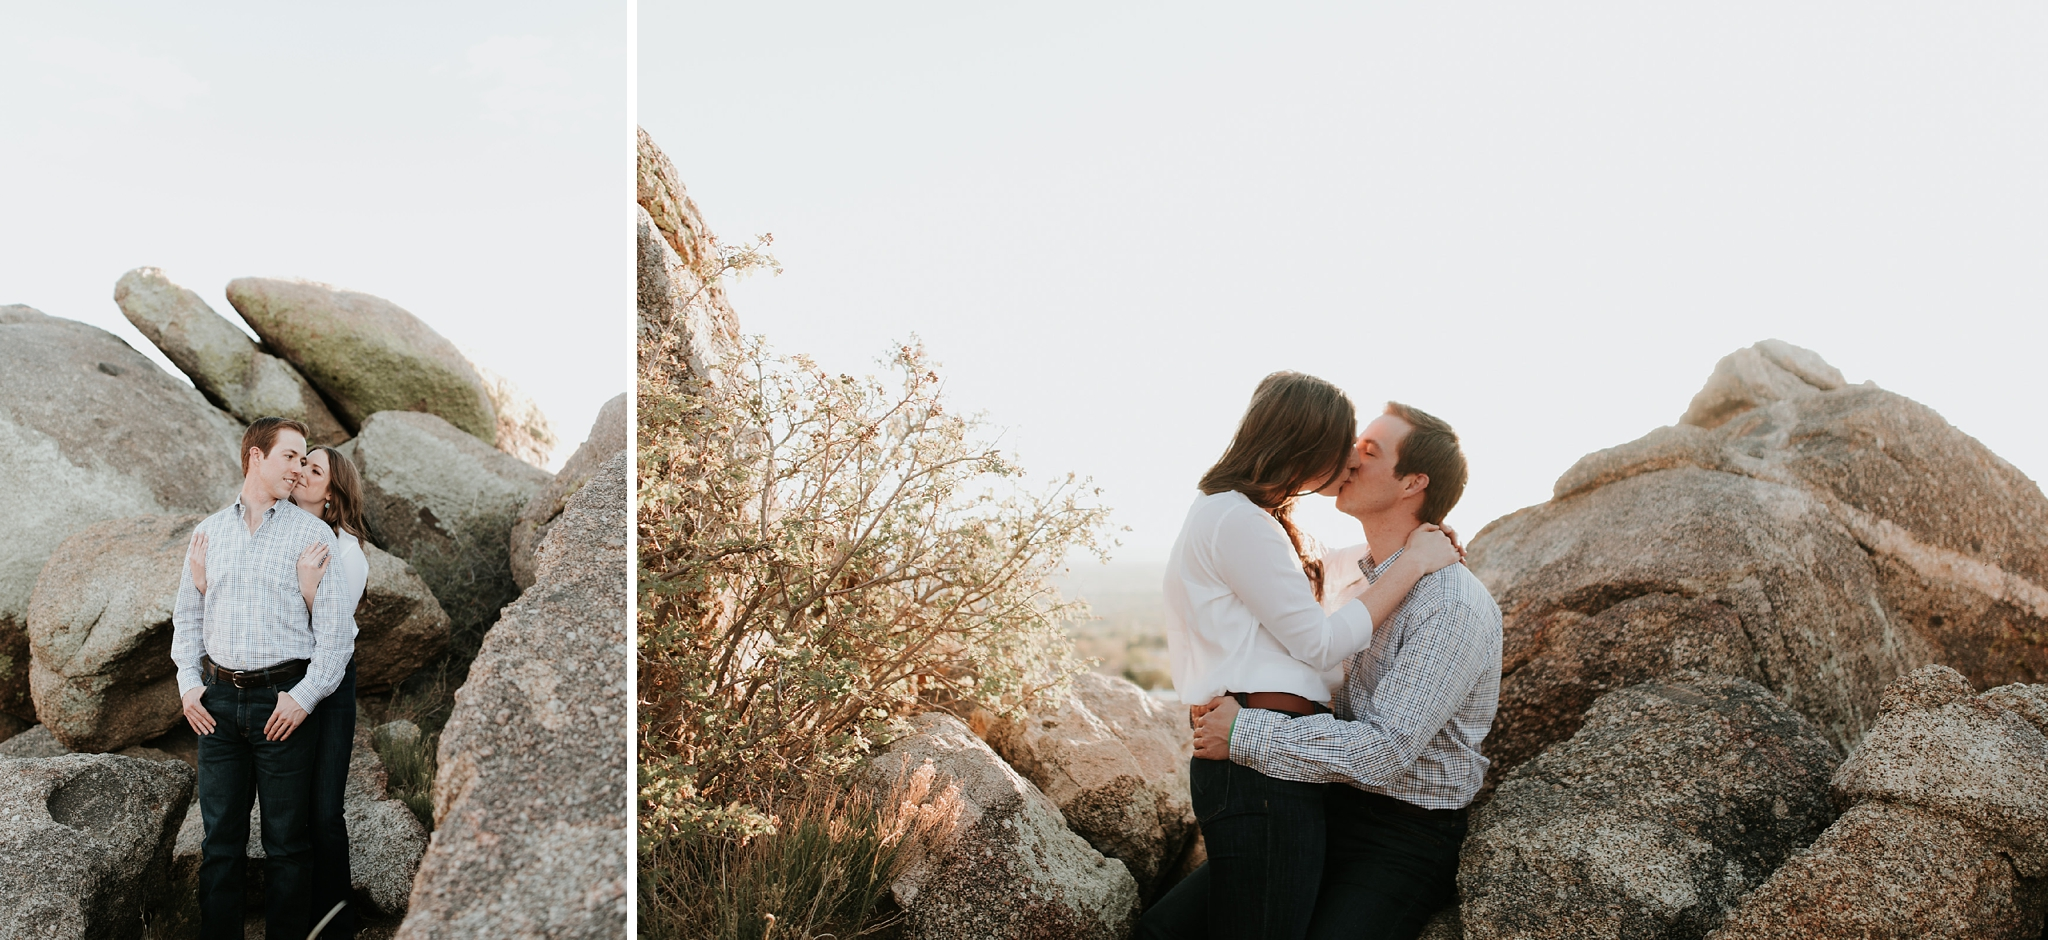 Alicia+lucia+photography+-+albuquerque+wedding+photographer+-+santa+fe+wedding+photography+-+new+mexico+wedding+photographer+-+new+mexico+wedding+-+engagement+-+engagement+photography+-+new+mexico+engagement+-+desert+engagement_0004.jpg